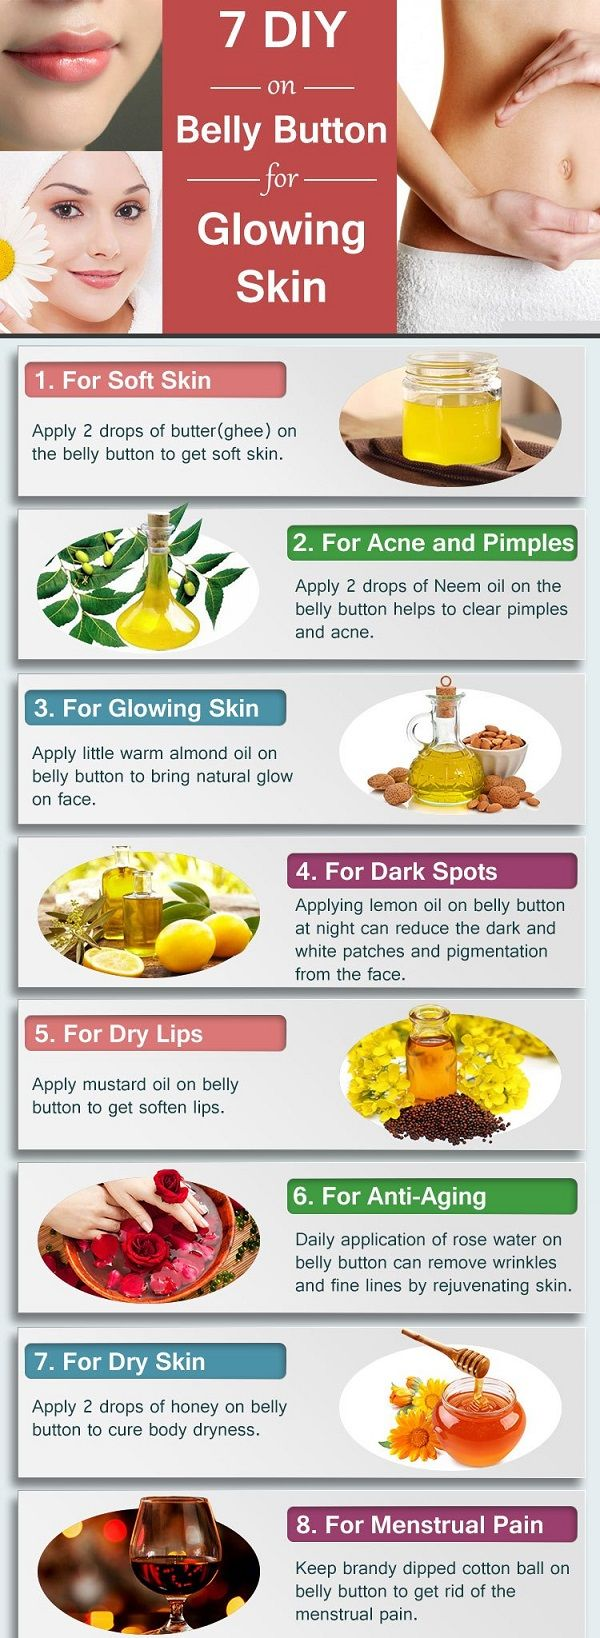 7 diy - benefits of putting oil on belly button for glowing